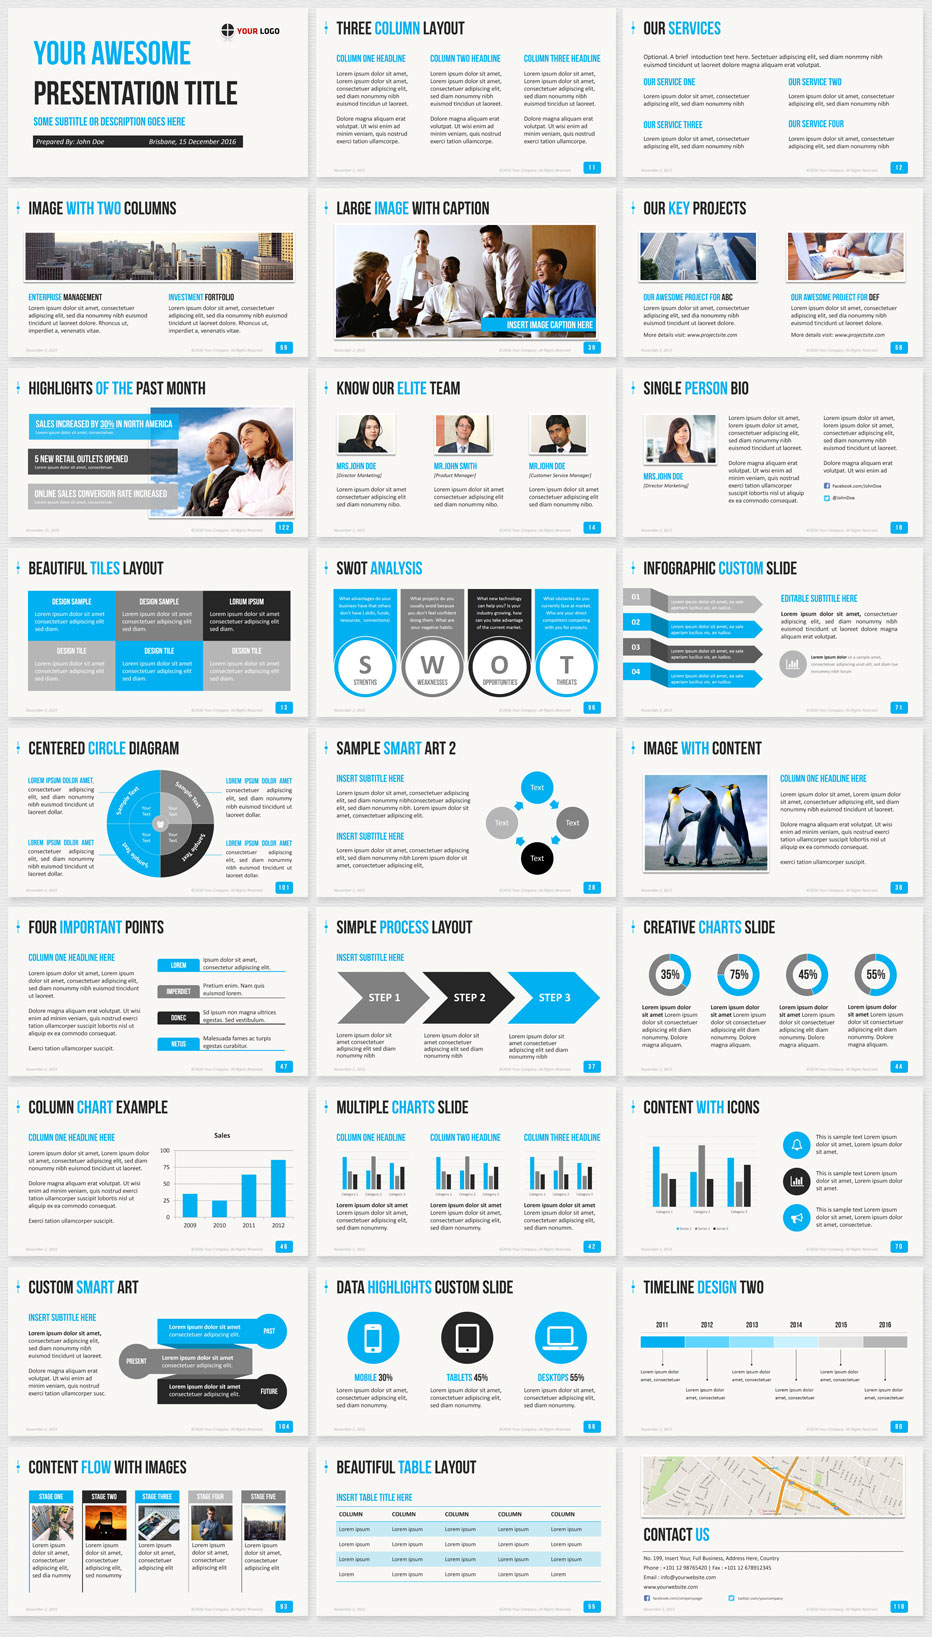 Professional business powerpoint templates demirediffusion professional business powerpoint templates wajeb